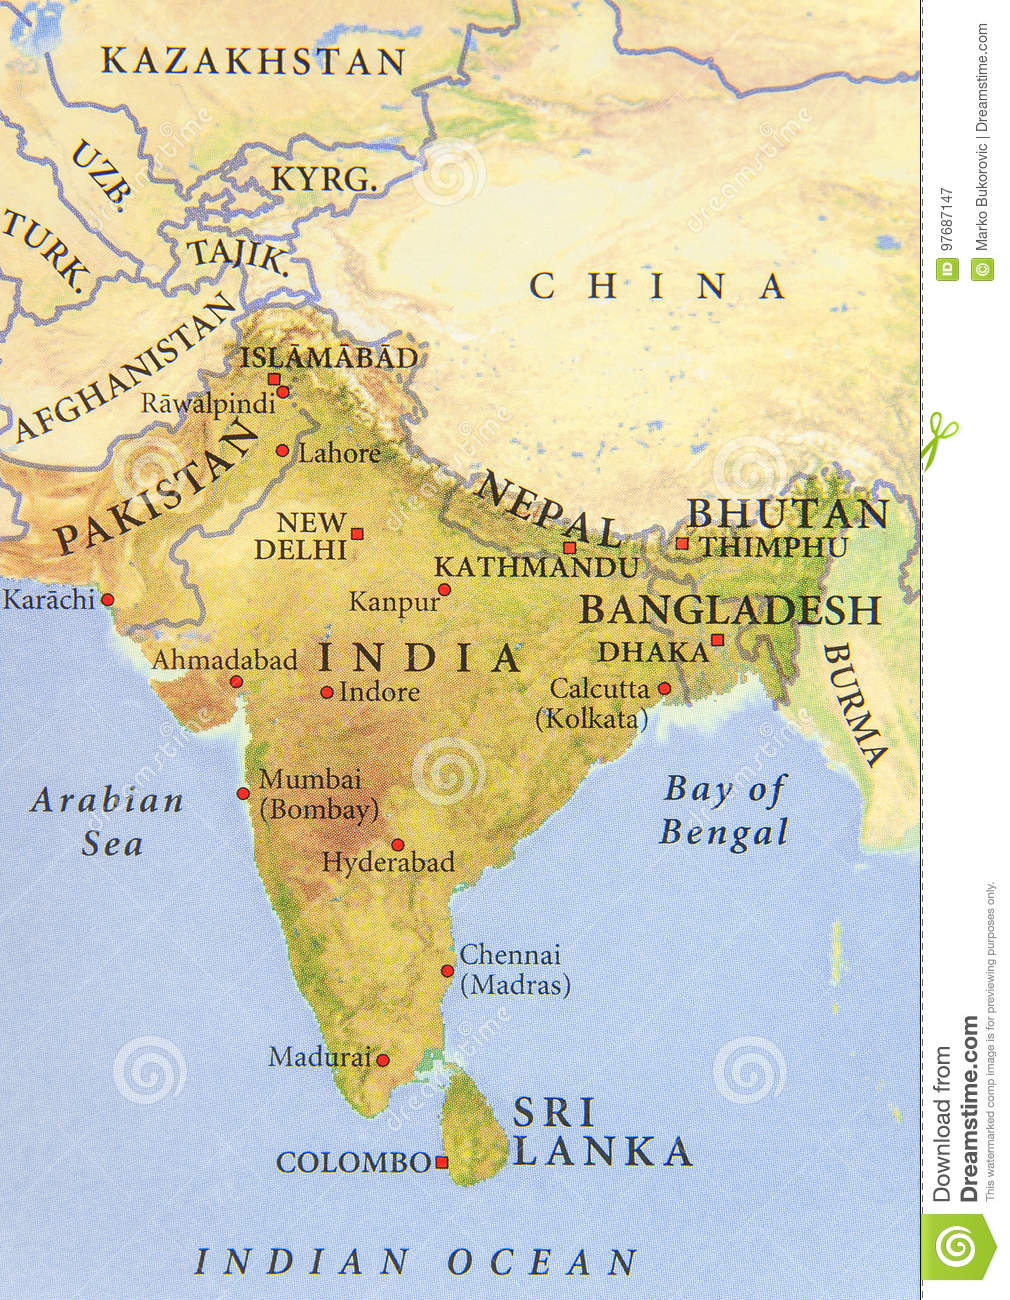 Geographic Map Of Pakistan India Nepal Bangladesh And Bhutan With